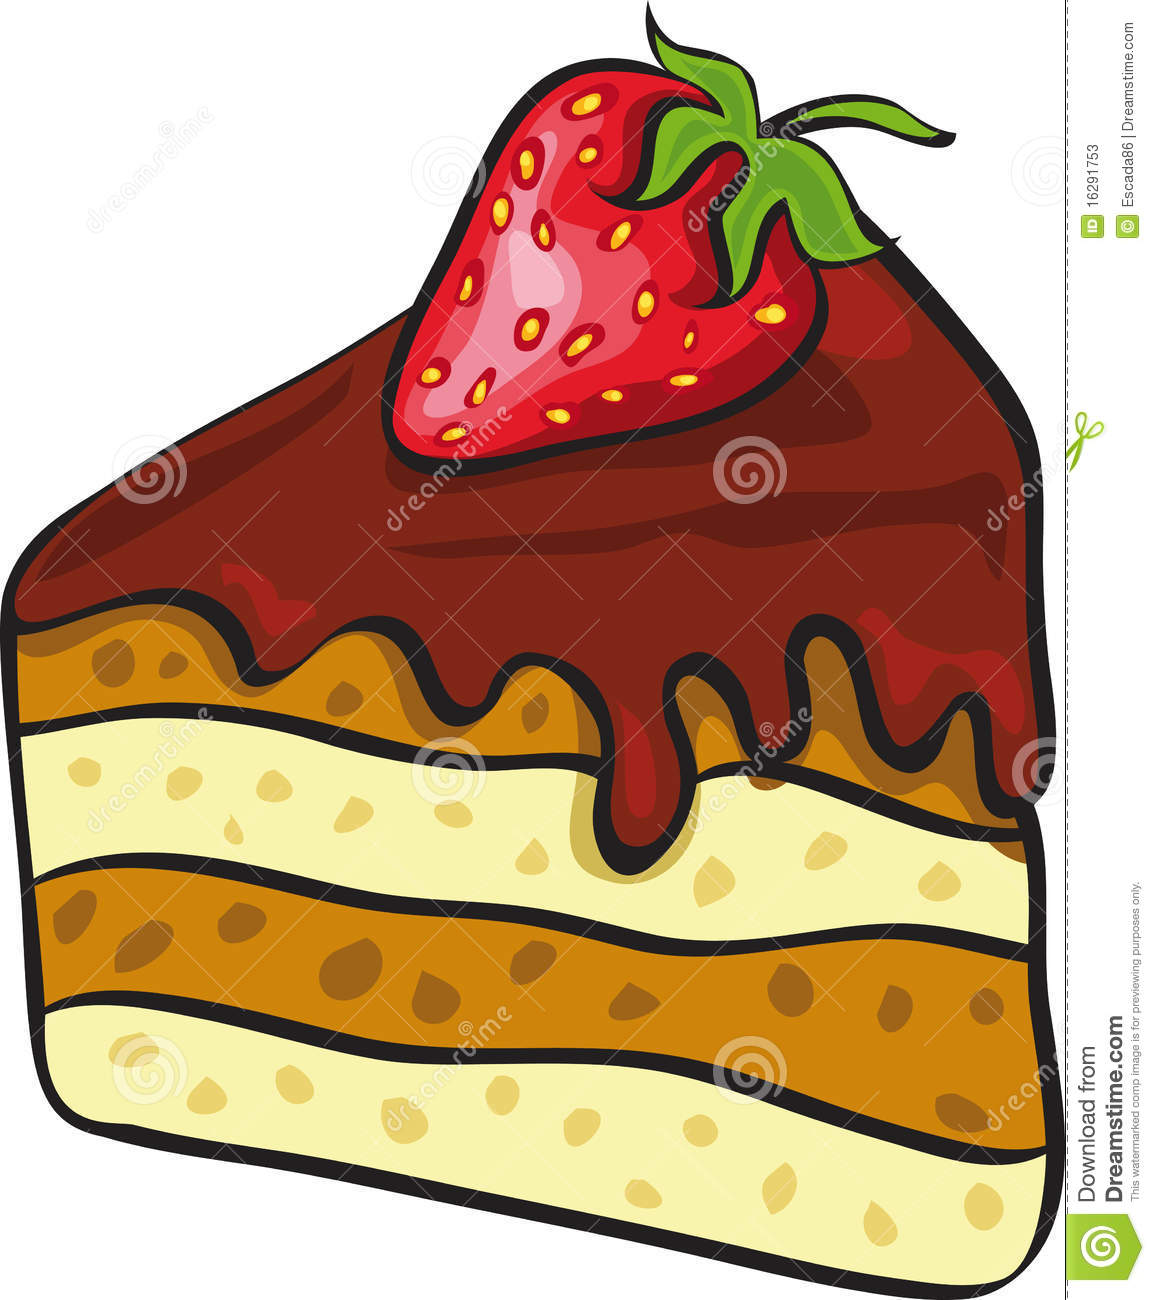 Piece of chocolate cake stock vector. Illustration of ...